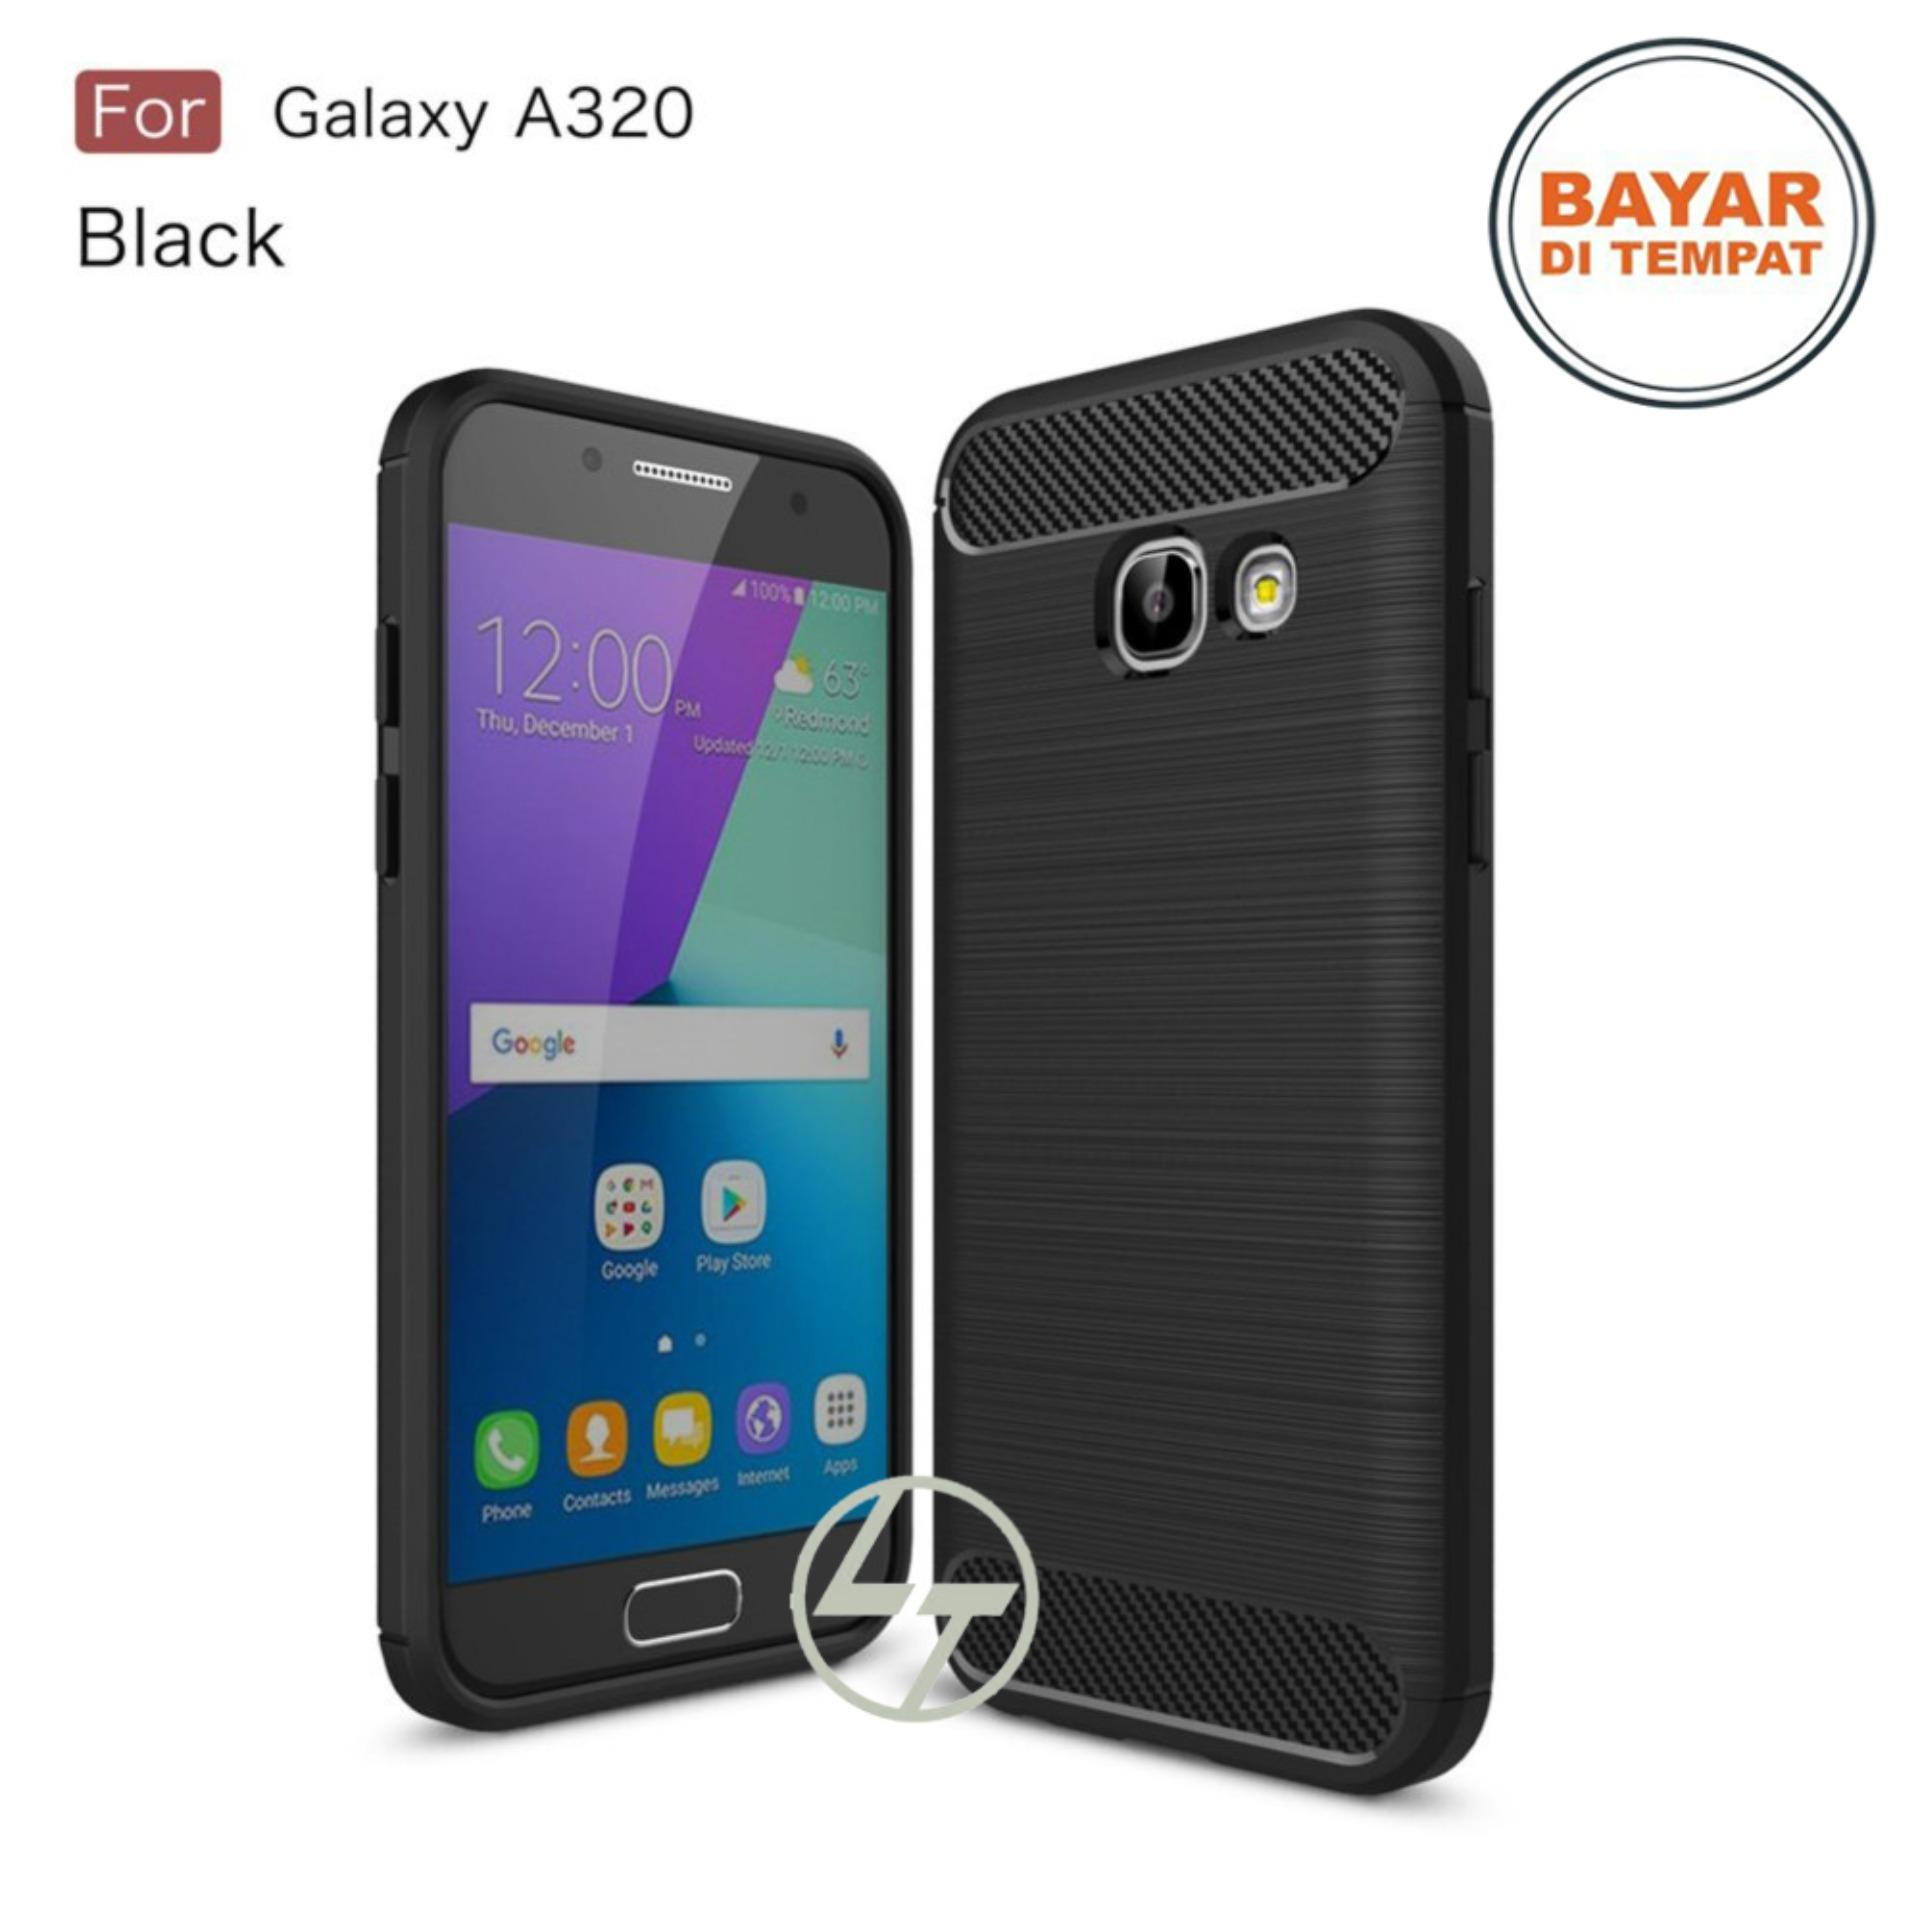 Lapak Case Carbon Fiber Premium Quality Shockproof TPU For Samsung Galaxy A320 2017